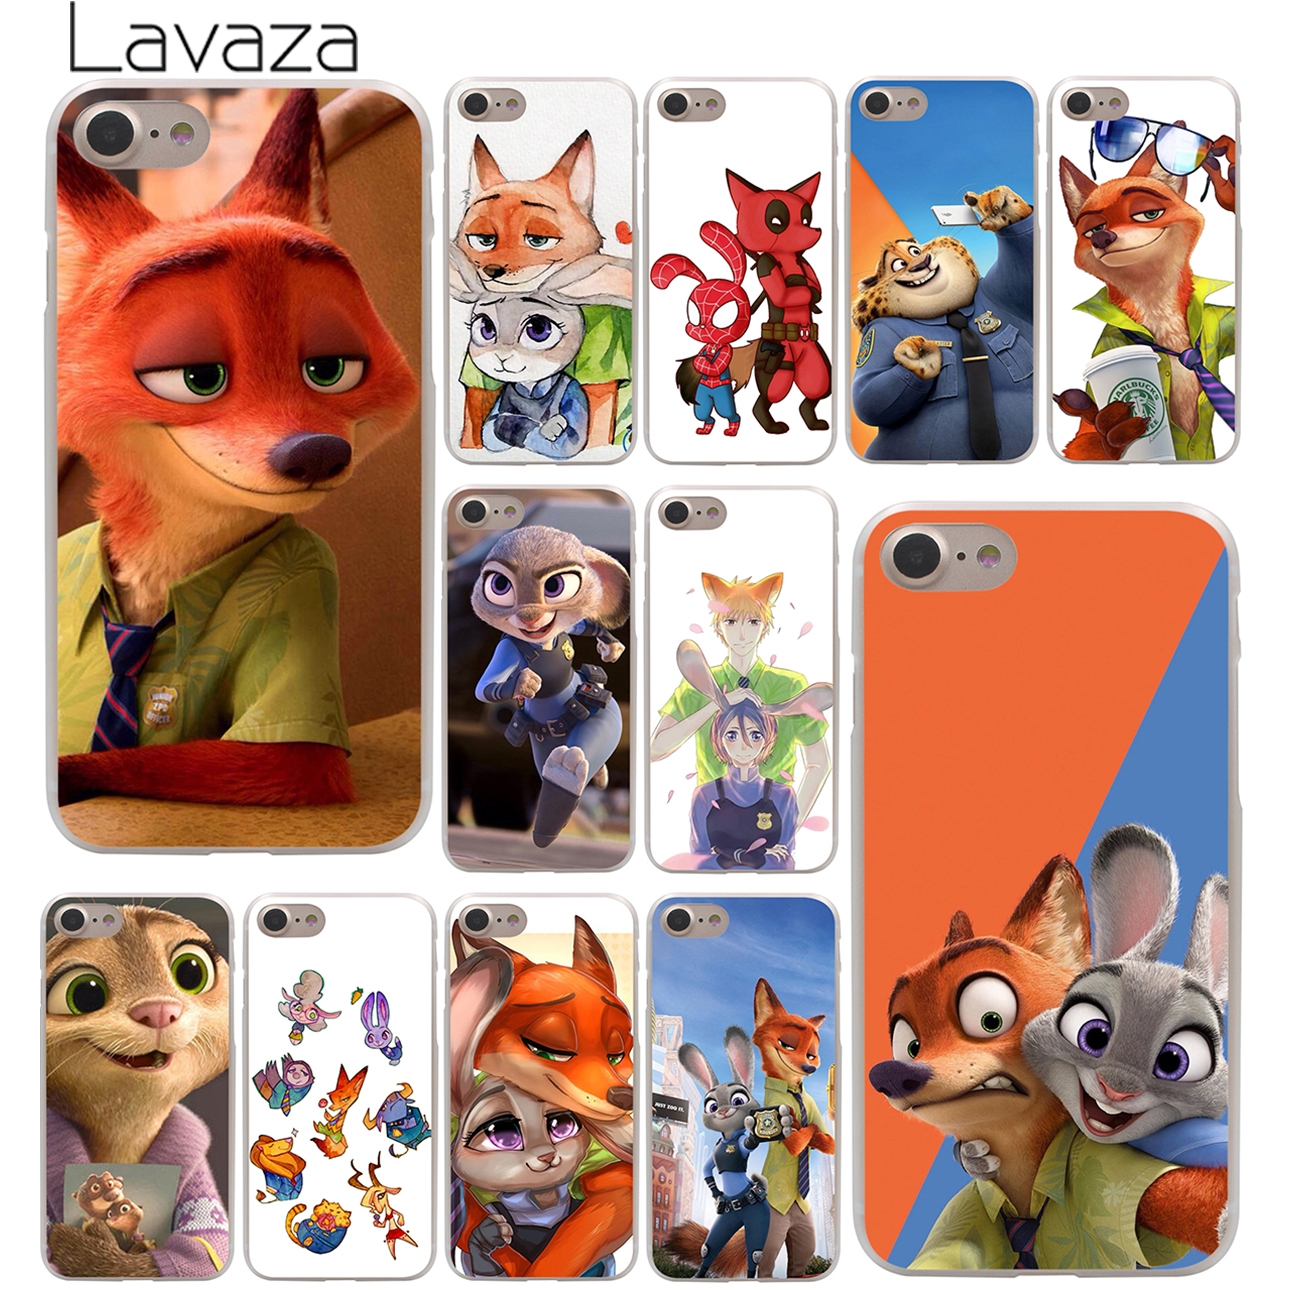 Galleria fotografica Lavaza New Lovely Crazy Zootopia Rabbit Hard Phone Cover Case for Apple iPhone 10 X 8 7 6 6s Plus 5 5S SE 5C 4 4S Coque Shell